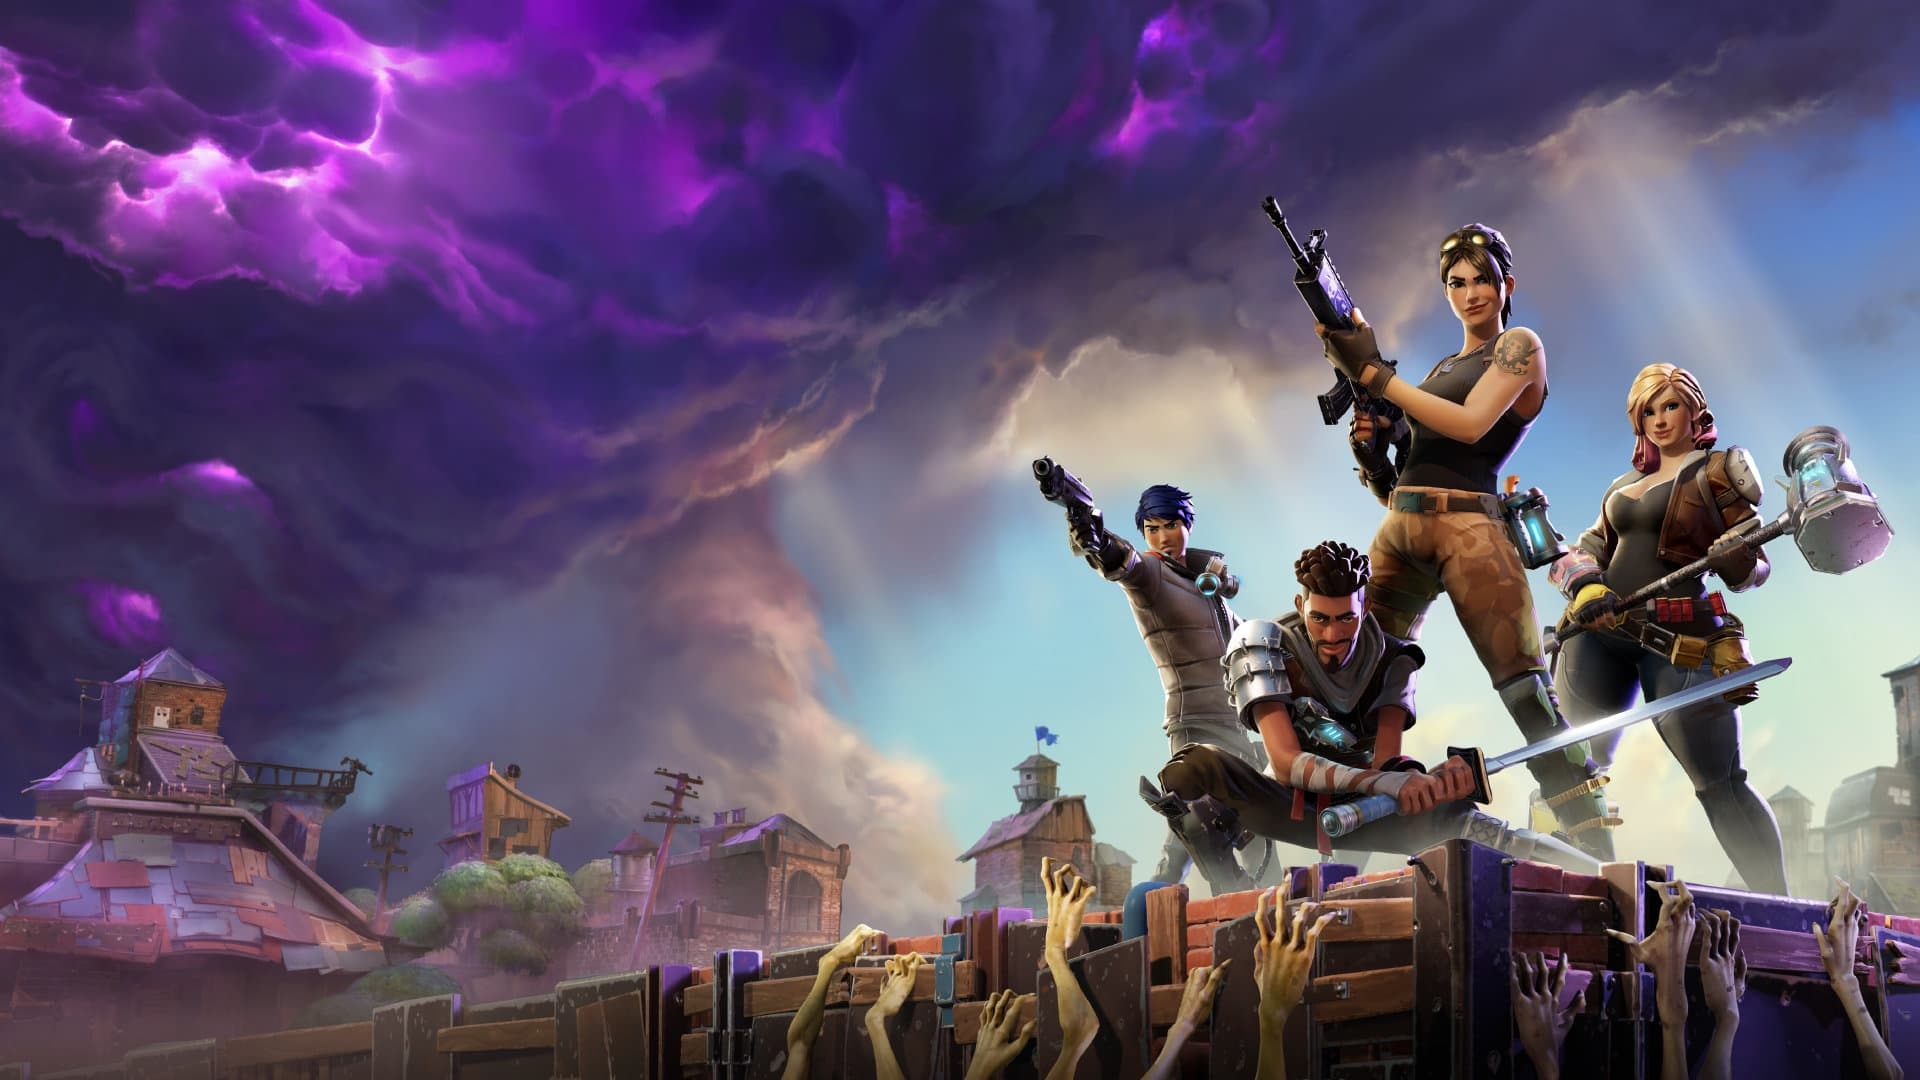 Fortnite' anniversary: Epic Games was founded by a college kid